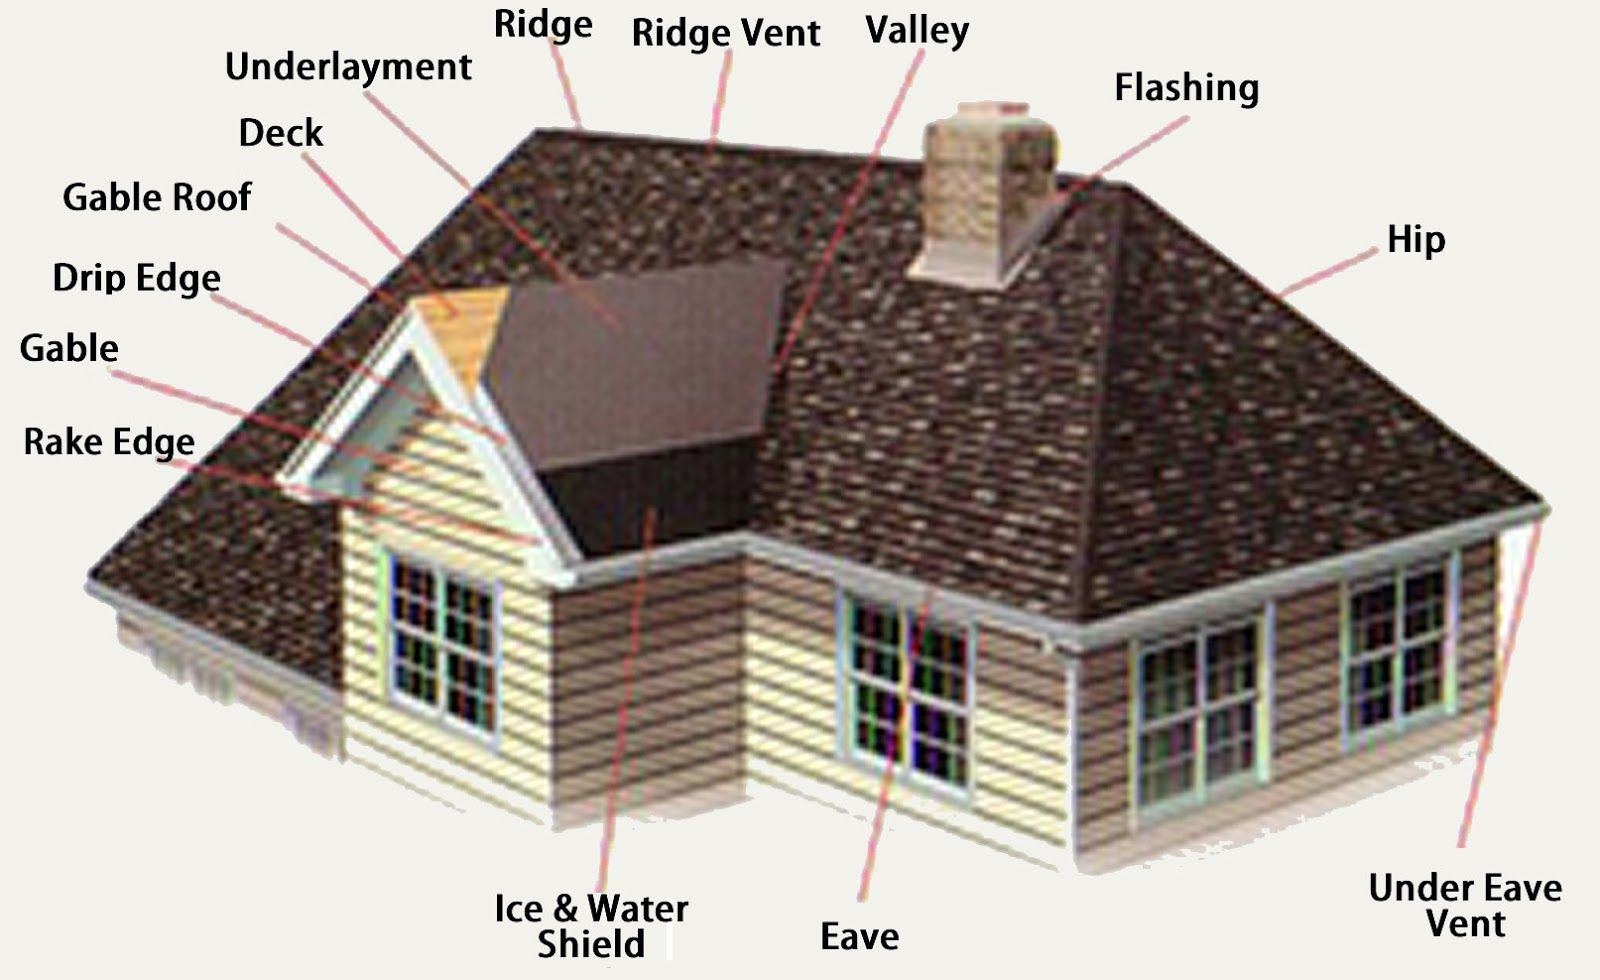 The Ideal Roofing Process (With images) Roof repair diy